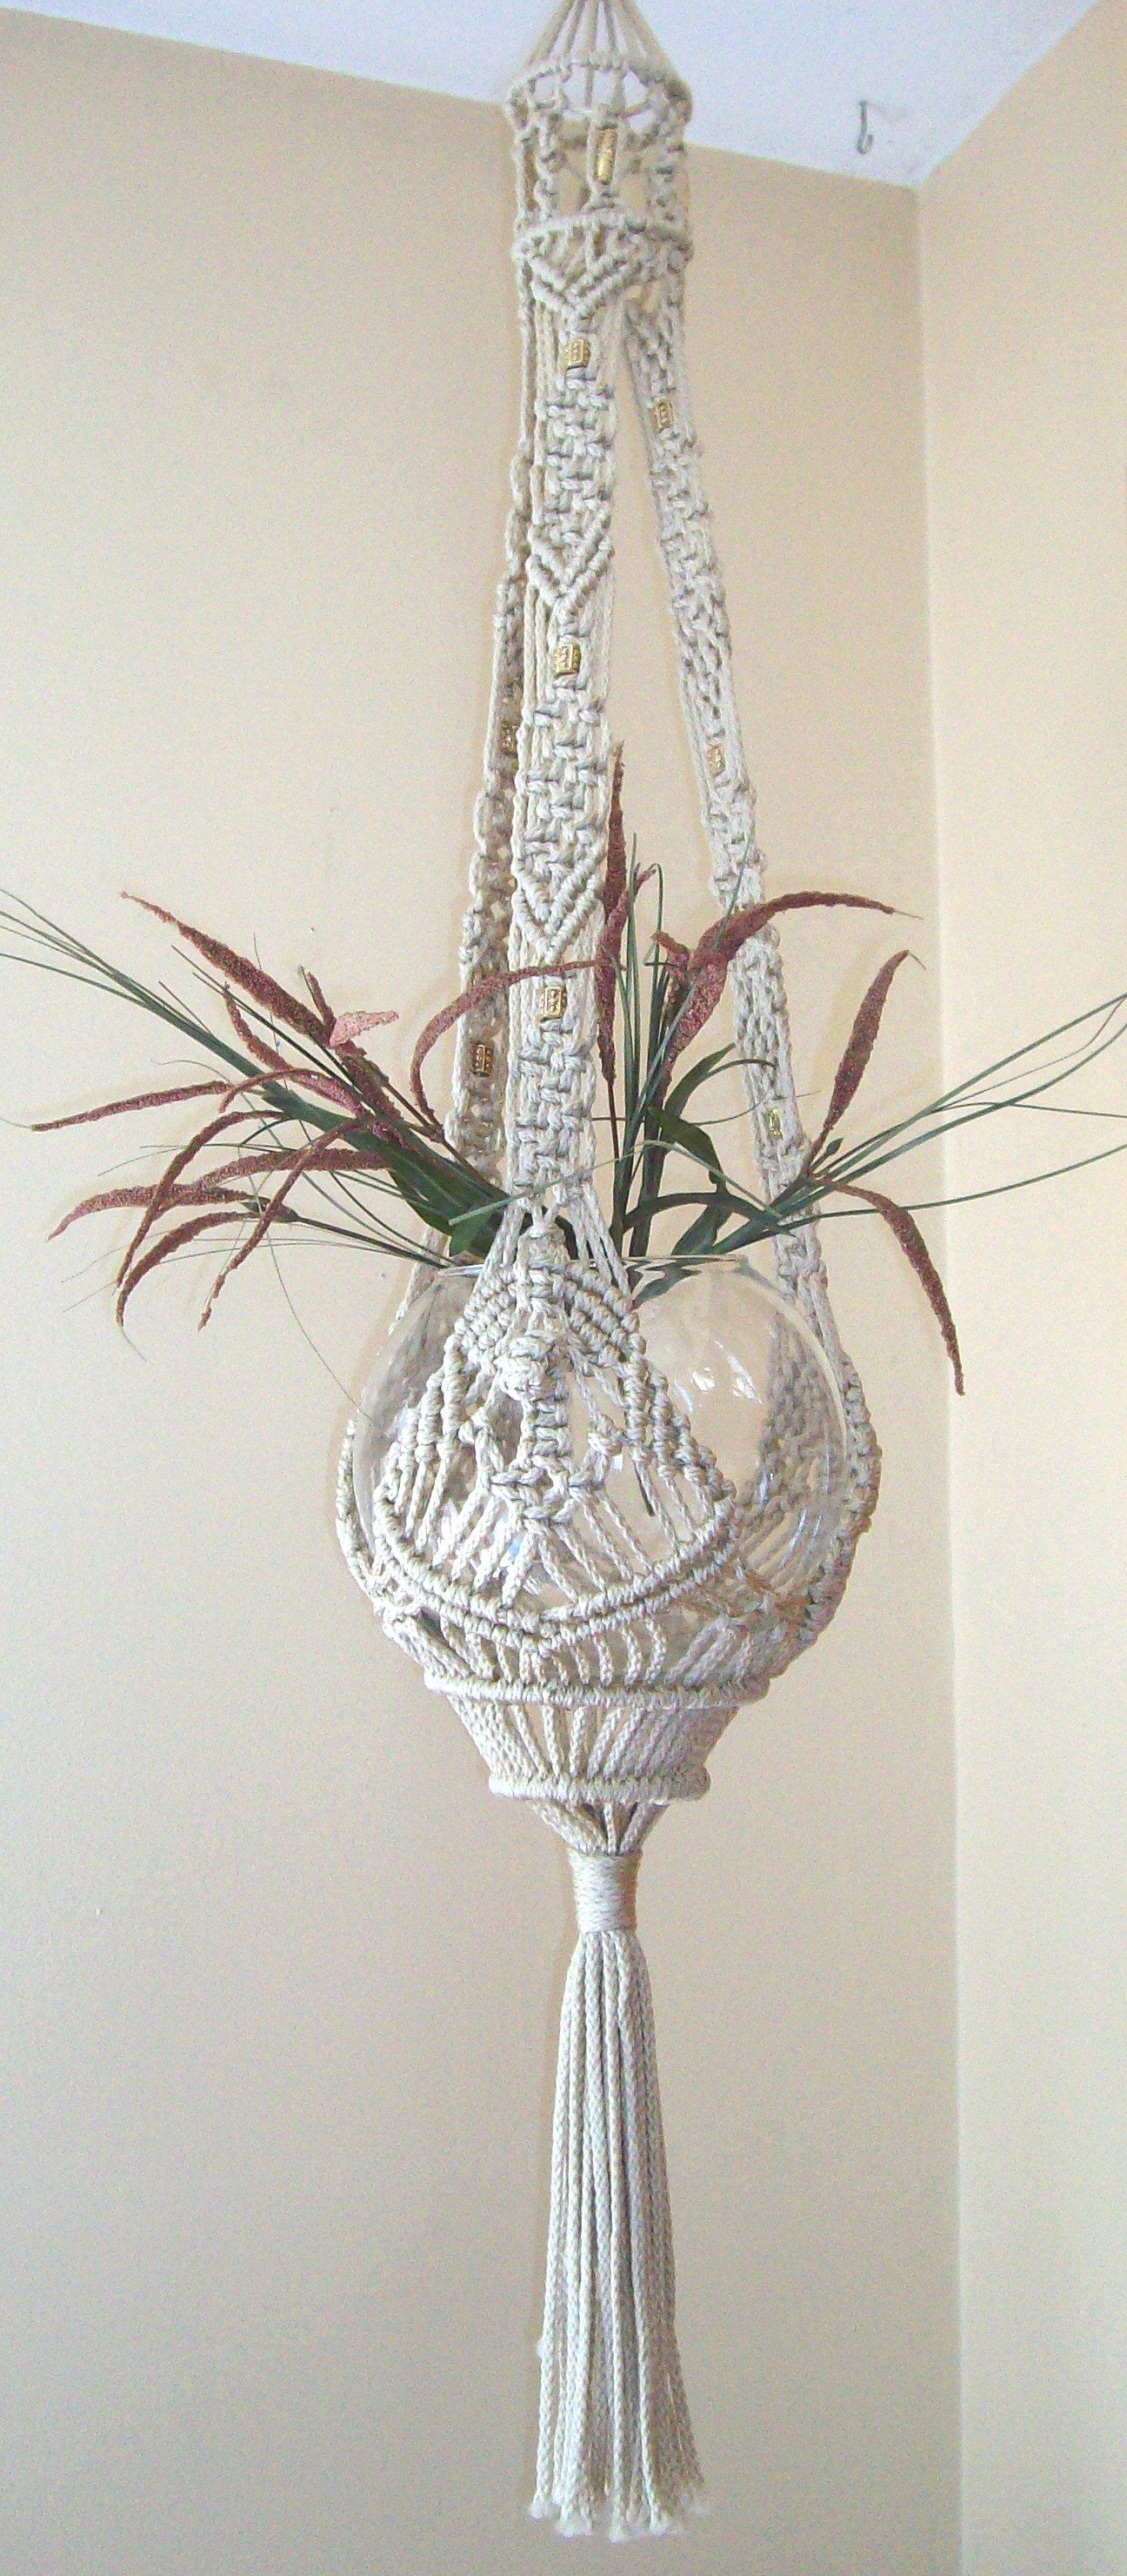 UNIQUE GIFT IDEA BEAUTIFUL VINTAGE STYLE MACRAME PLANT HANGER// BASKET